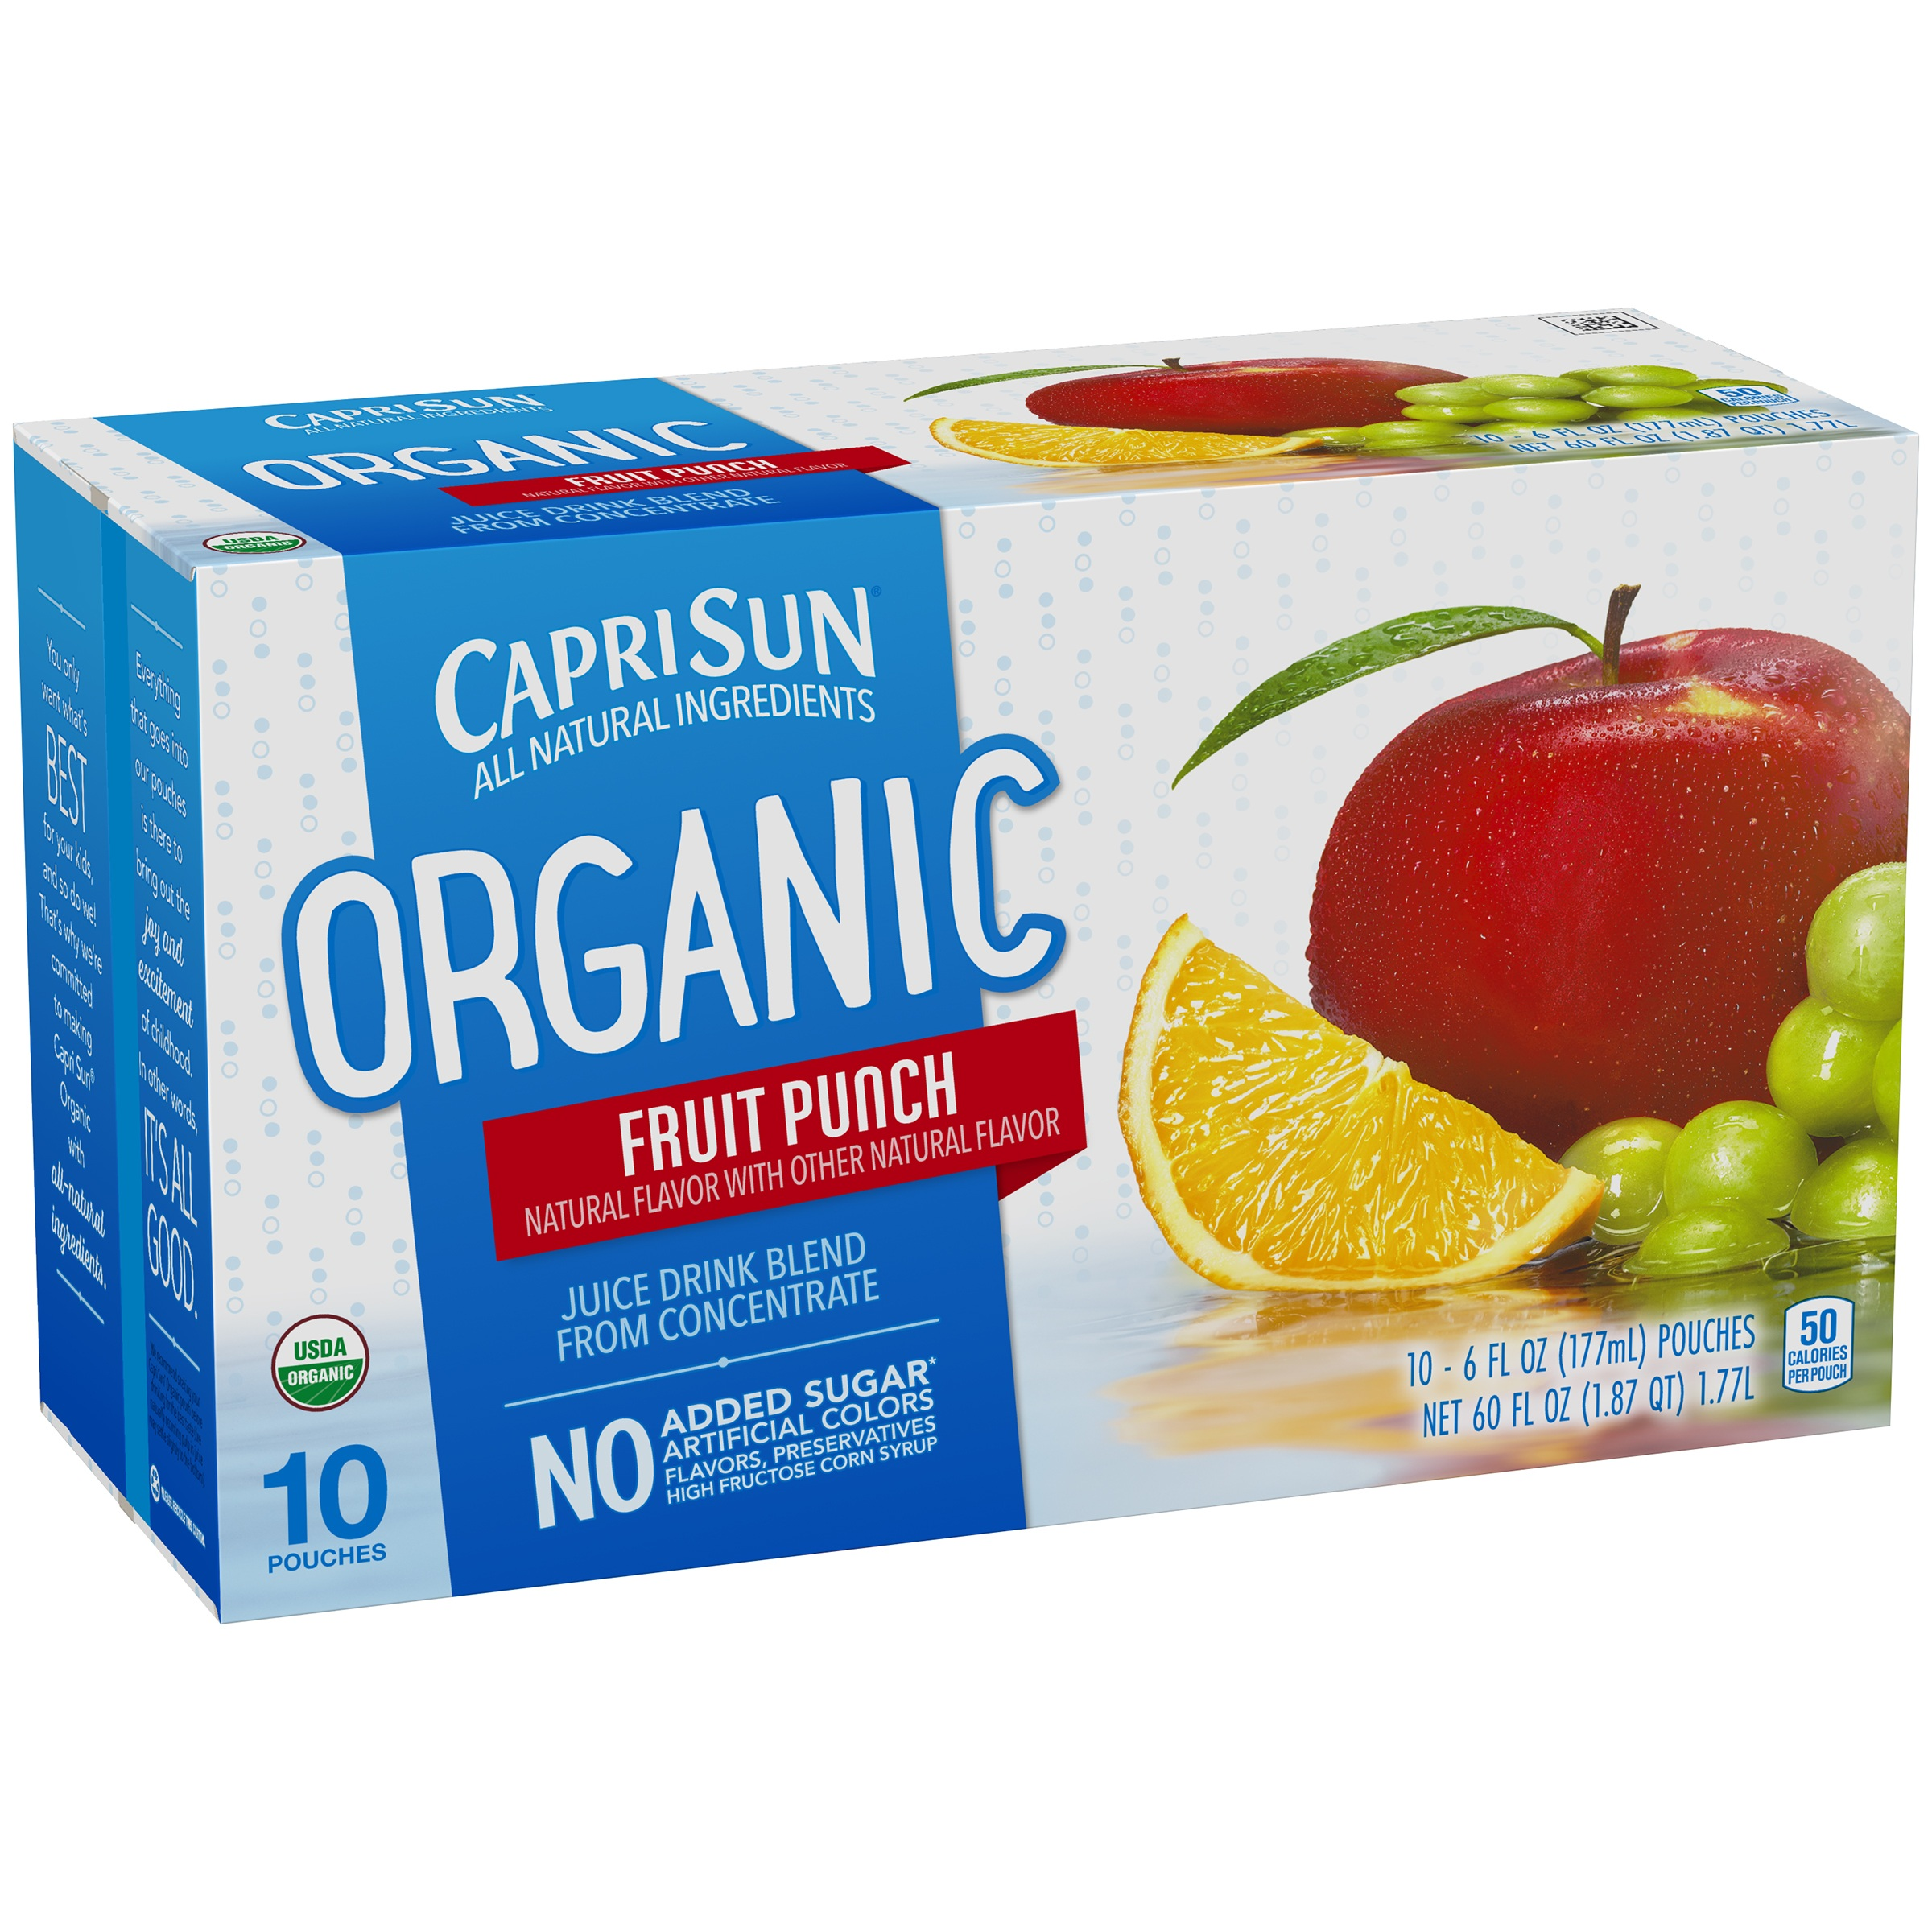 Capri Sun Organic Juice Pouches, Fruit Punch, 6 Fl Oz, 10 Count